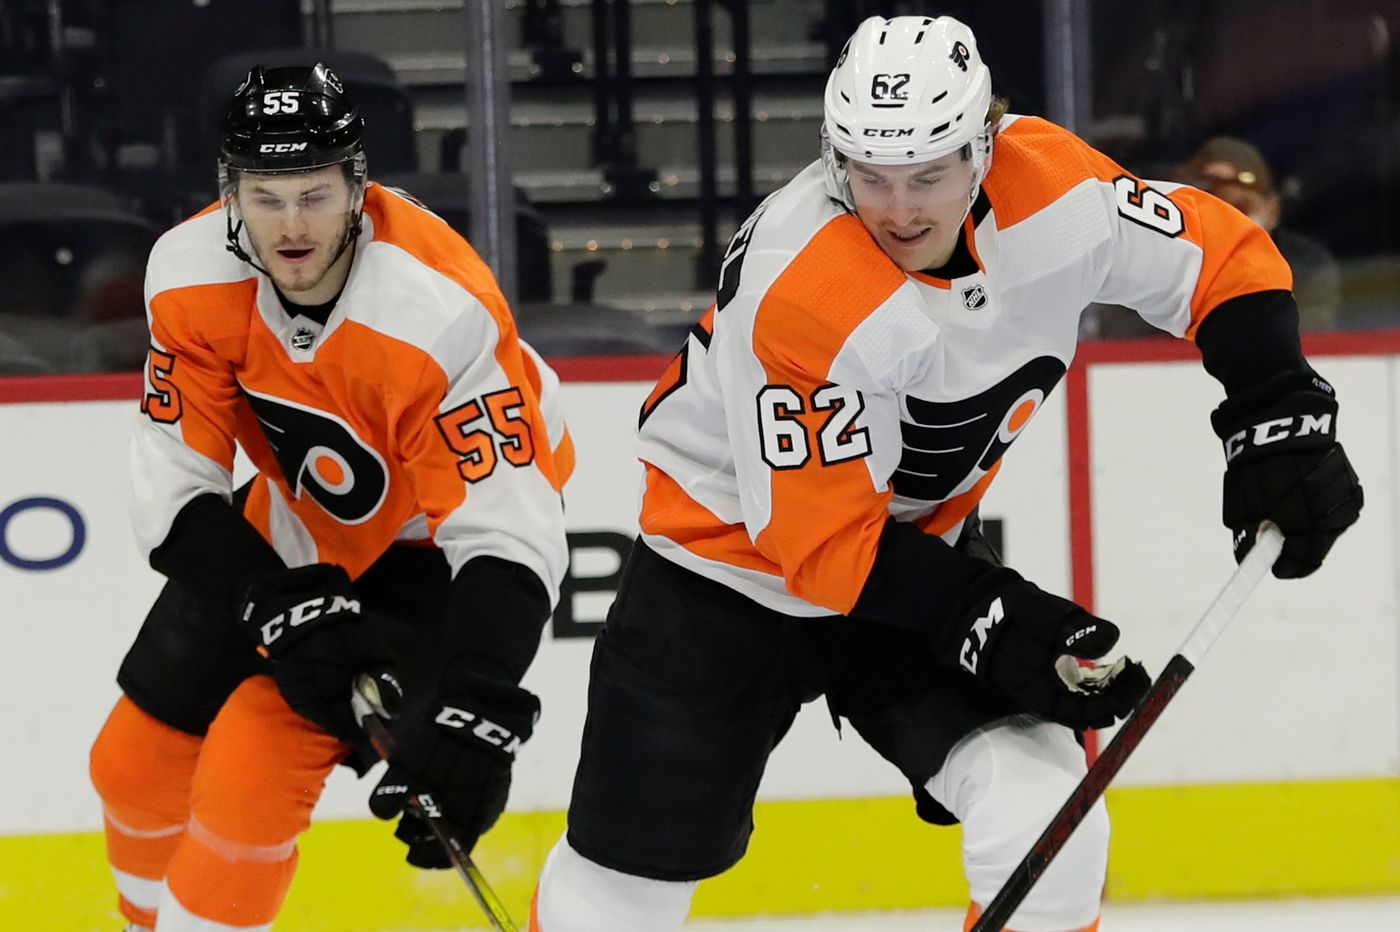 Samuel Morin, Alex Lyon among 7 Flyers placed on waivers as the opening-day roster takes shape